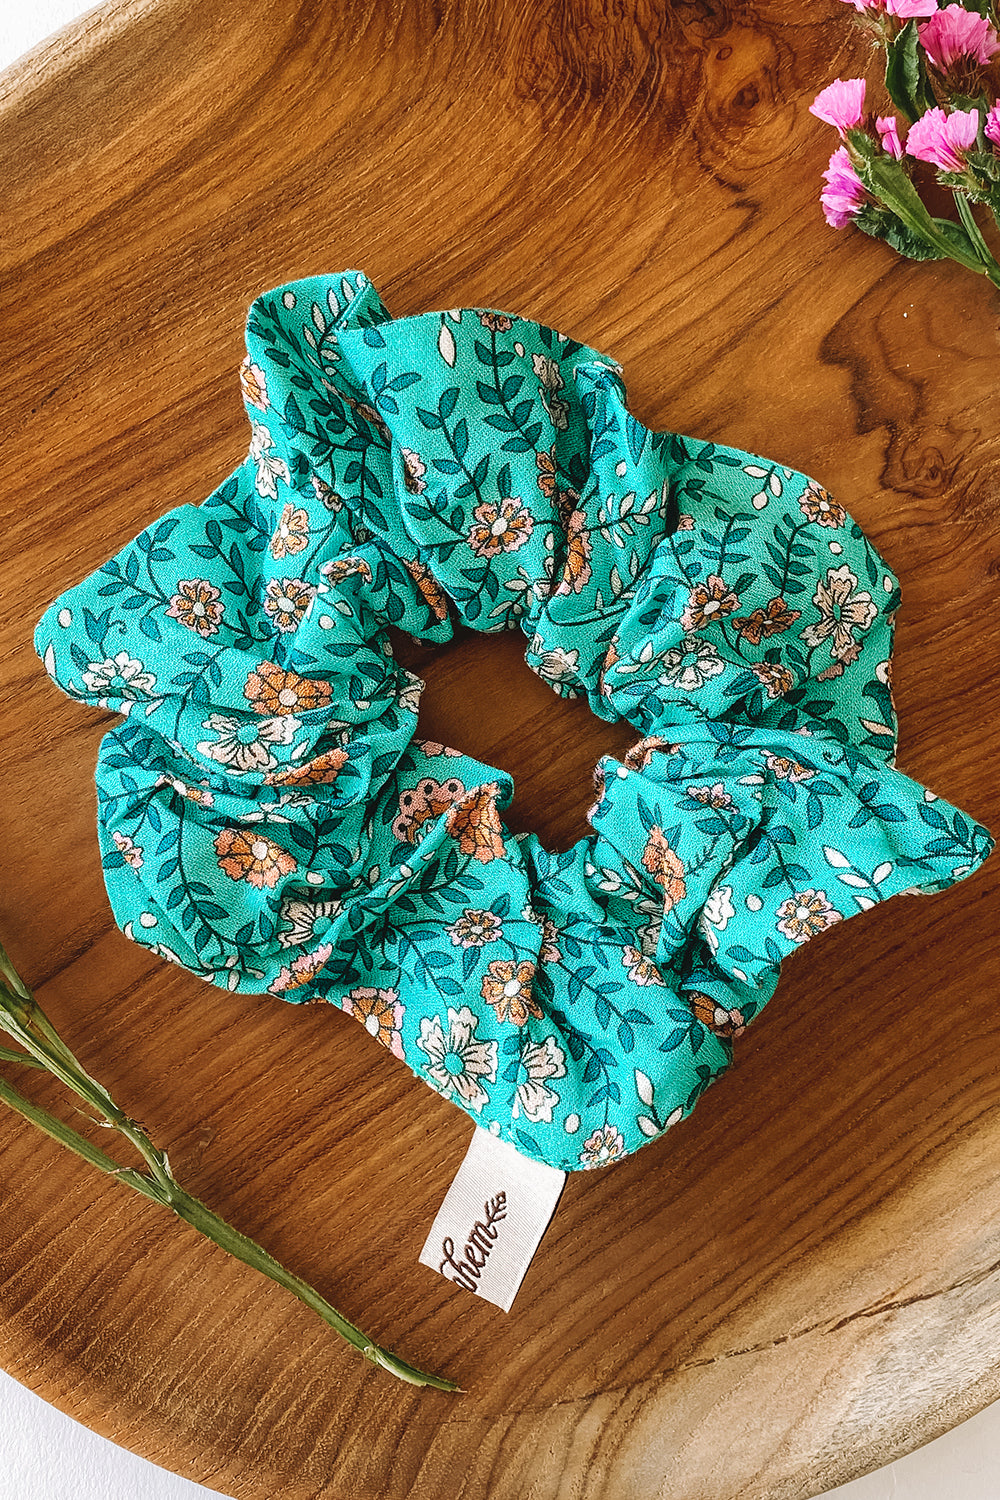 Fleetwood Revive Small Scrunchie in Floral Green